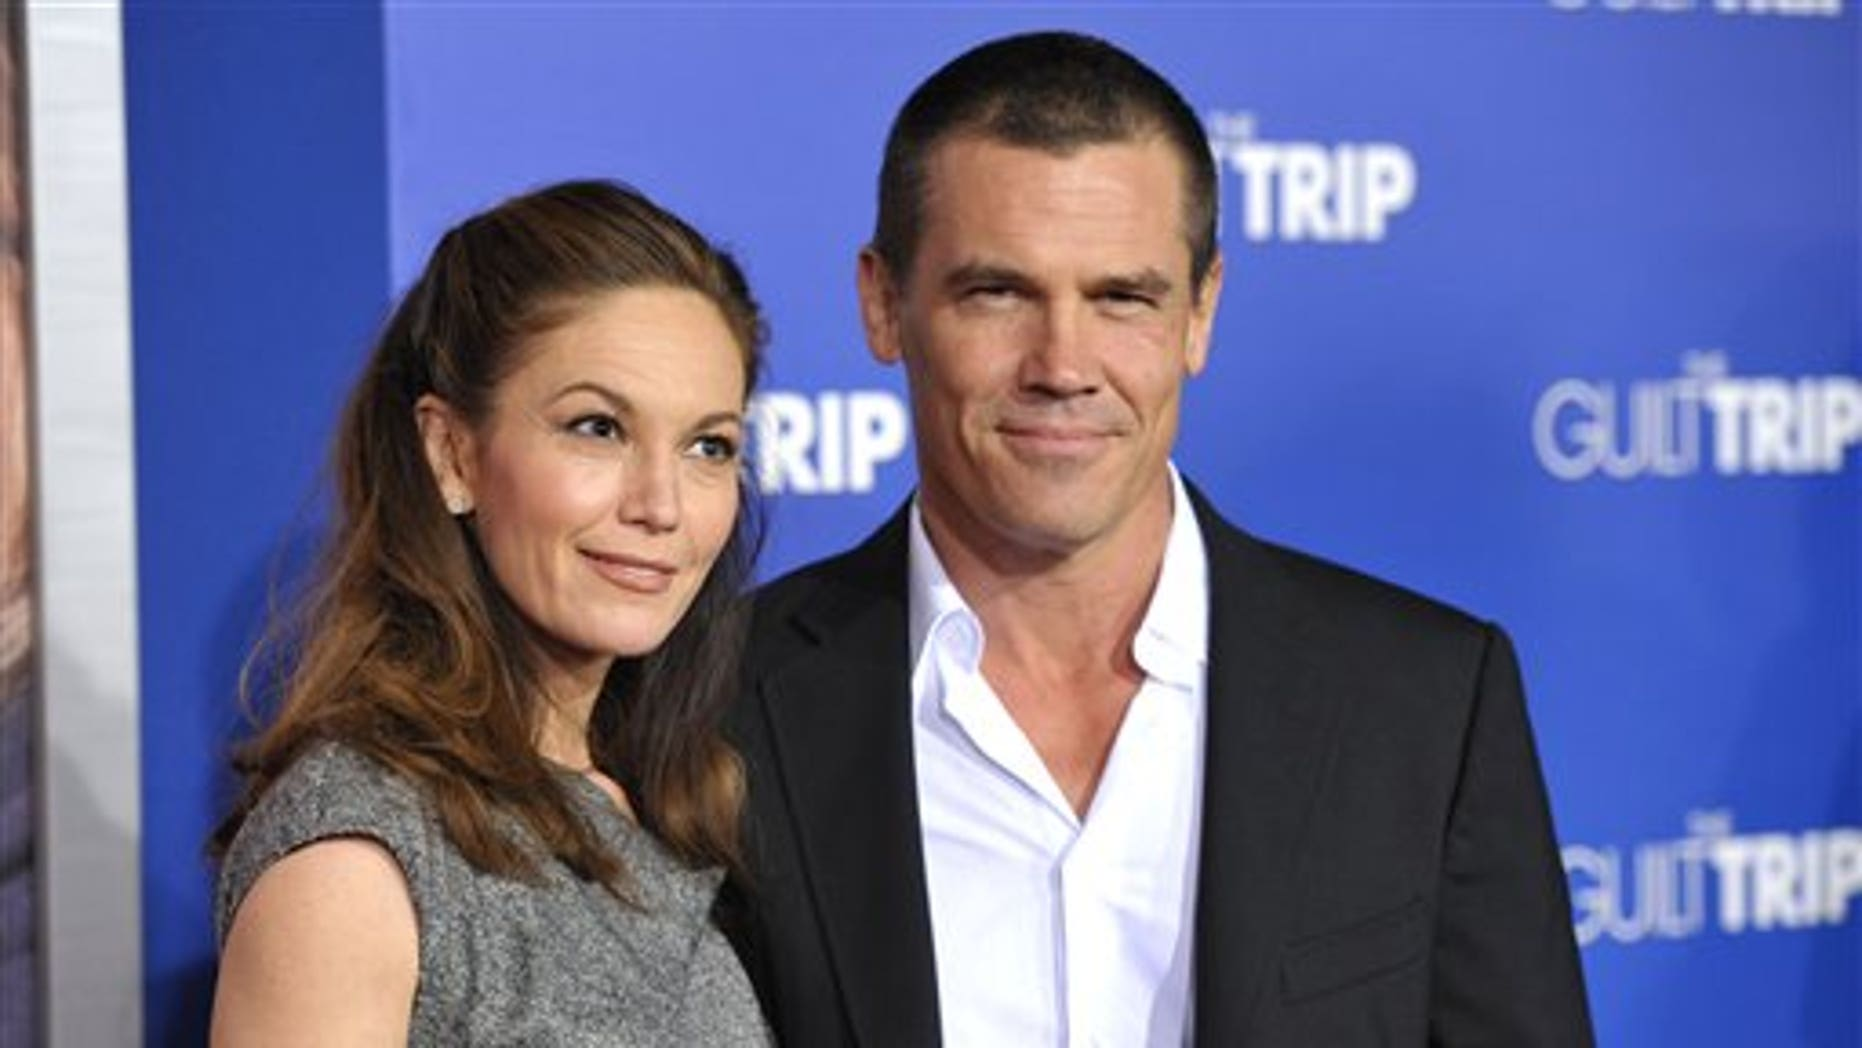 "This Dec. 11, 2012 file photo shows actors Diane Lane, left, and Josh Brolin at the LA premiere of ""The Guilt Trip"" in Los Angeles."